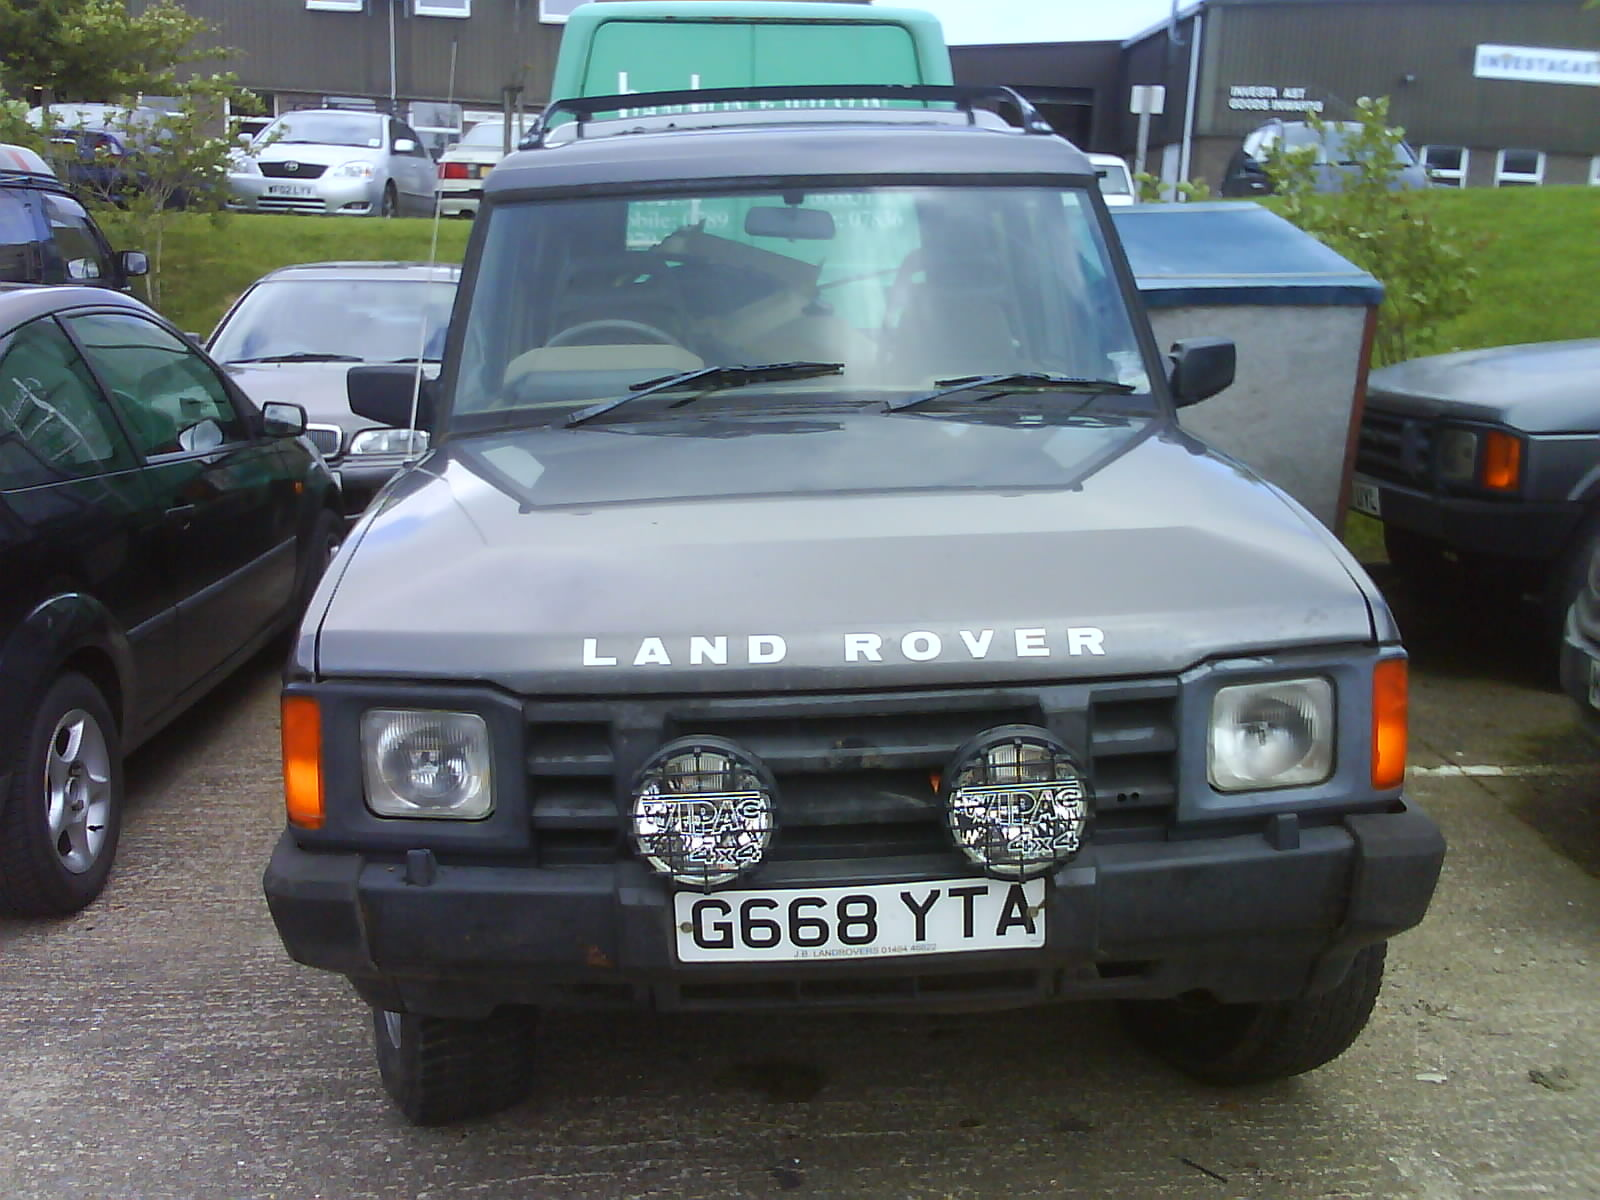 car cheap land project s designed speed hero top red news help landrover geneva is cross cars to rover